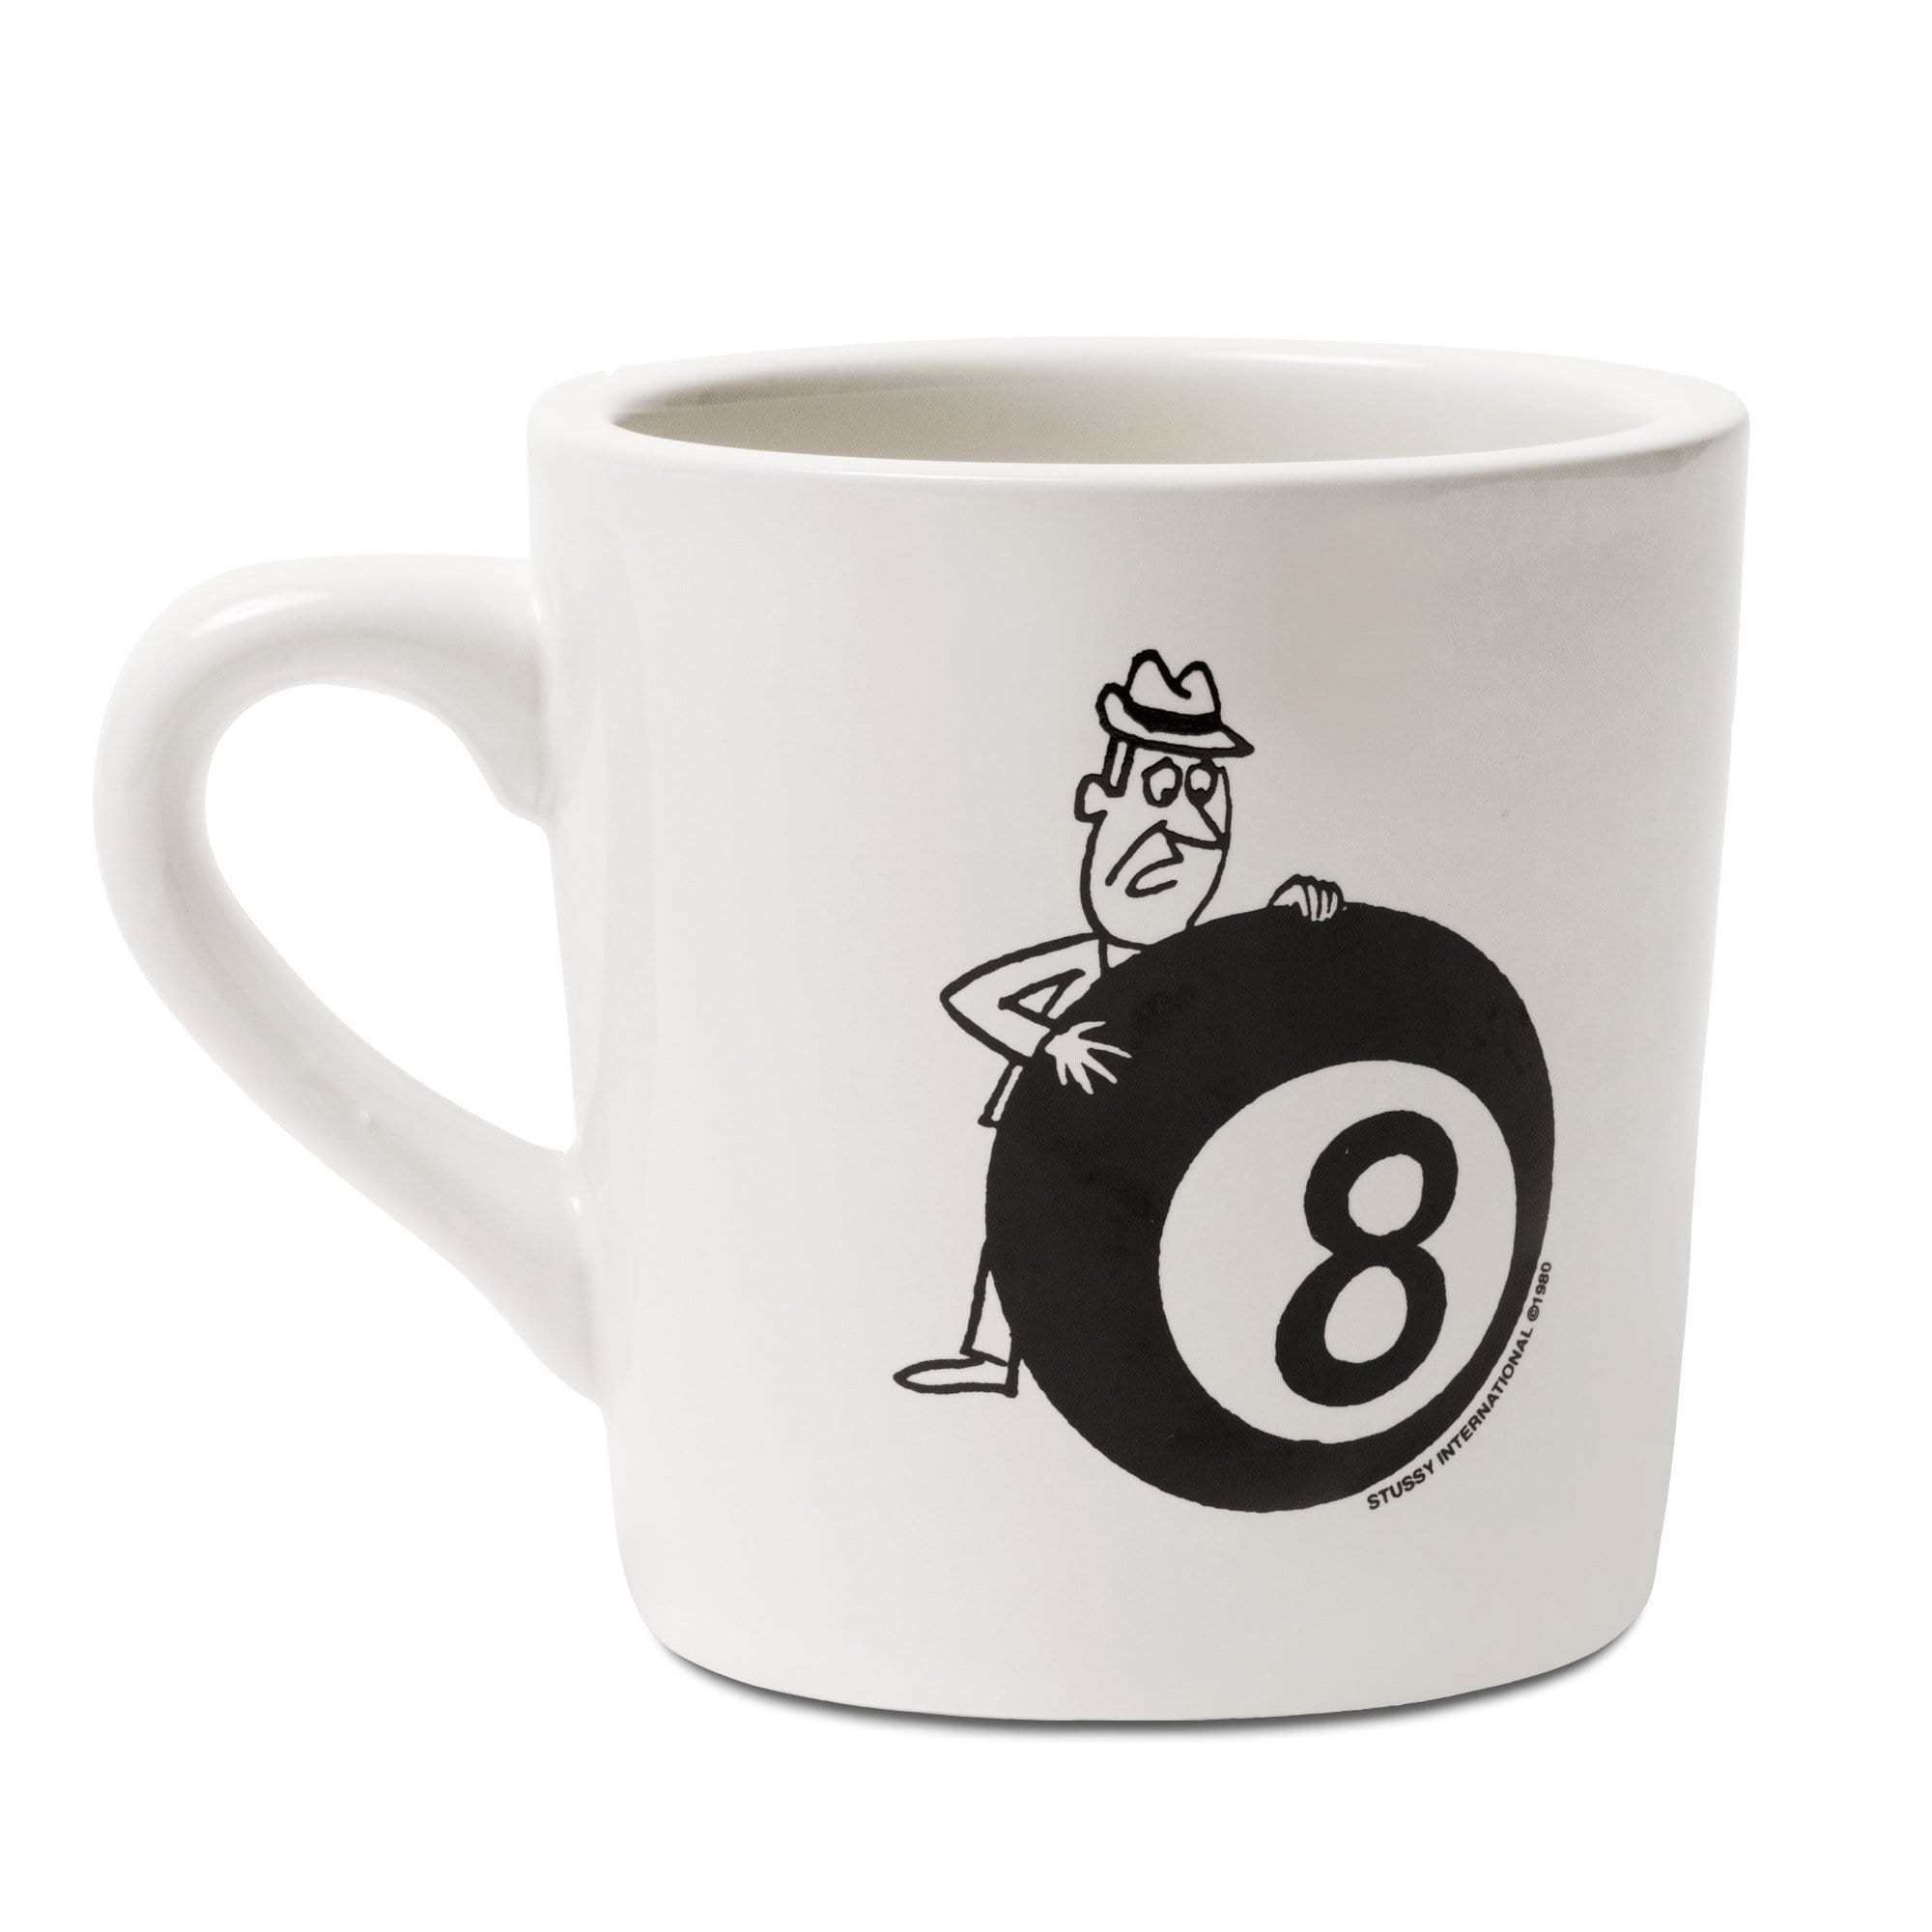 Stüssy Küche & Kochen Behind The 8 Ball Ceramic Mug